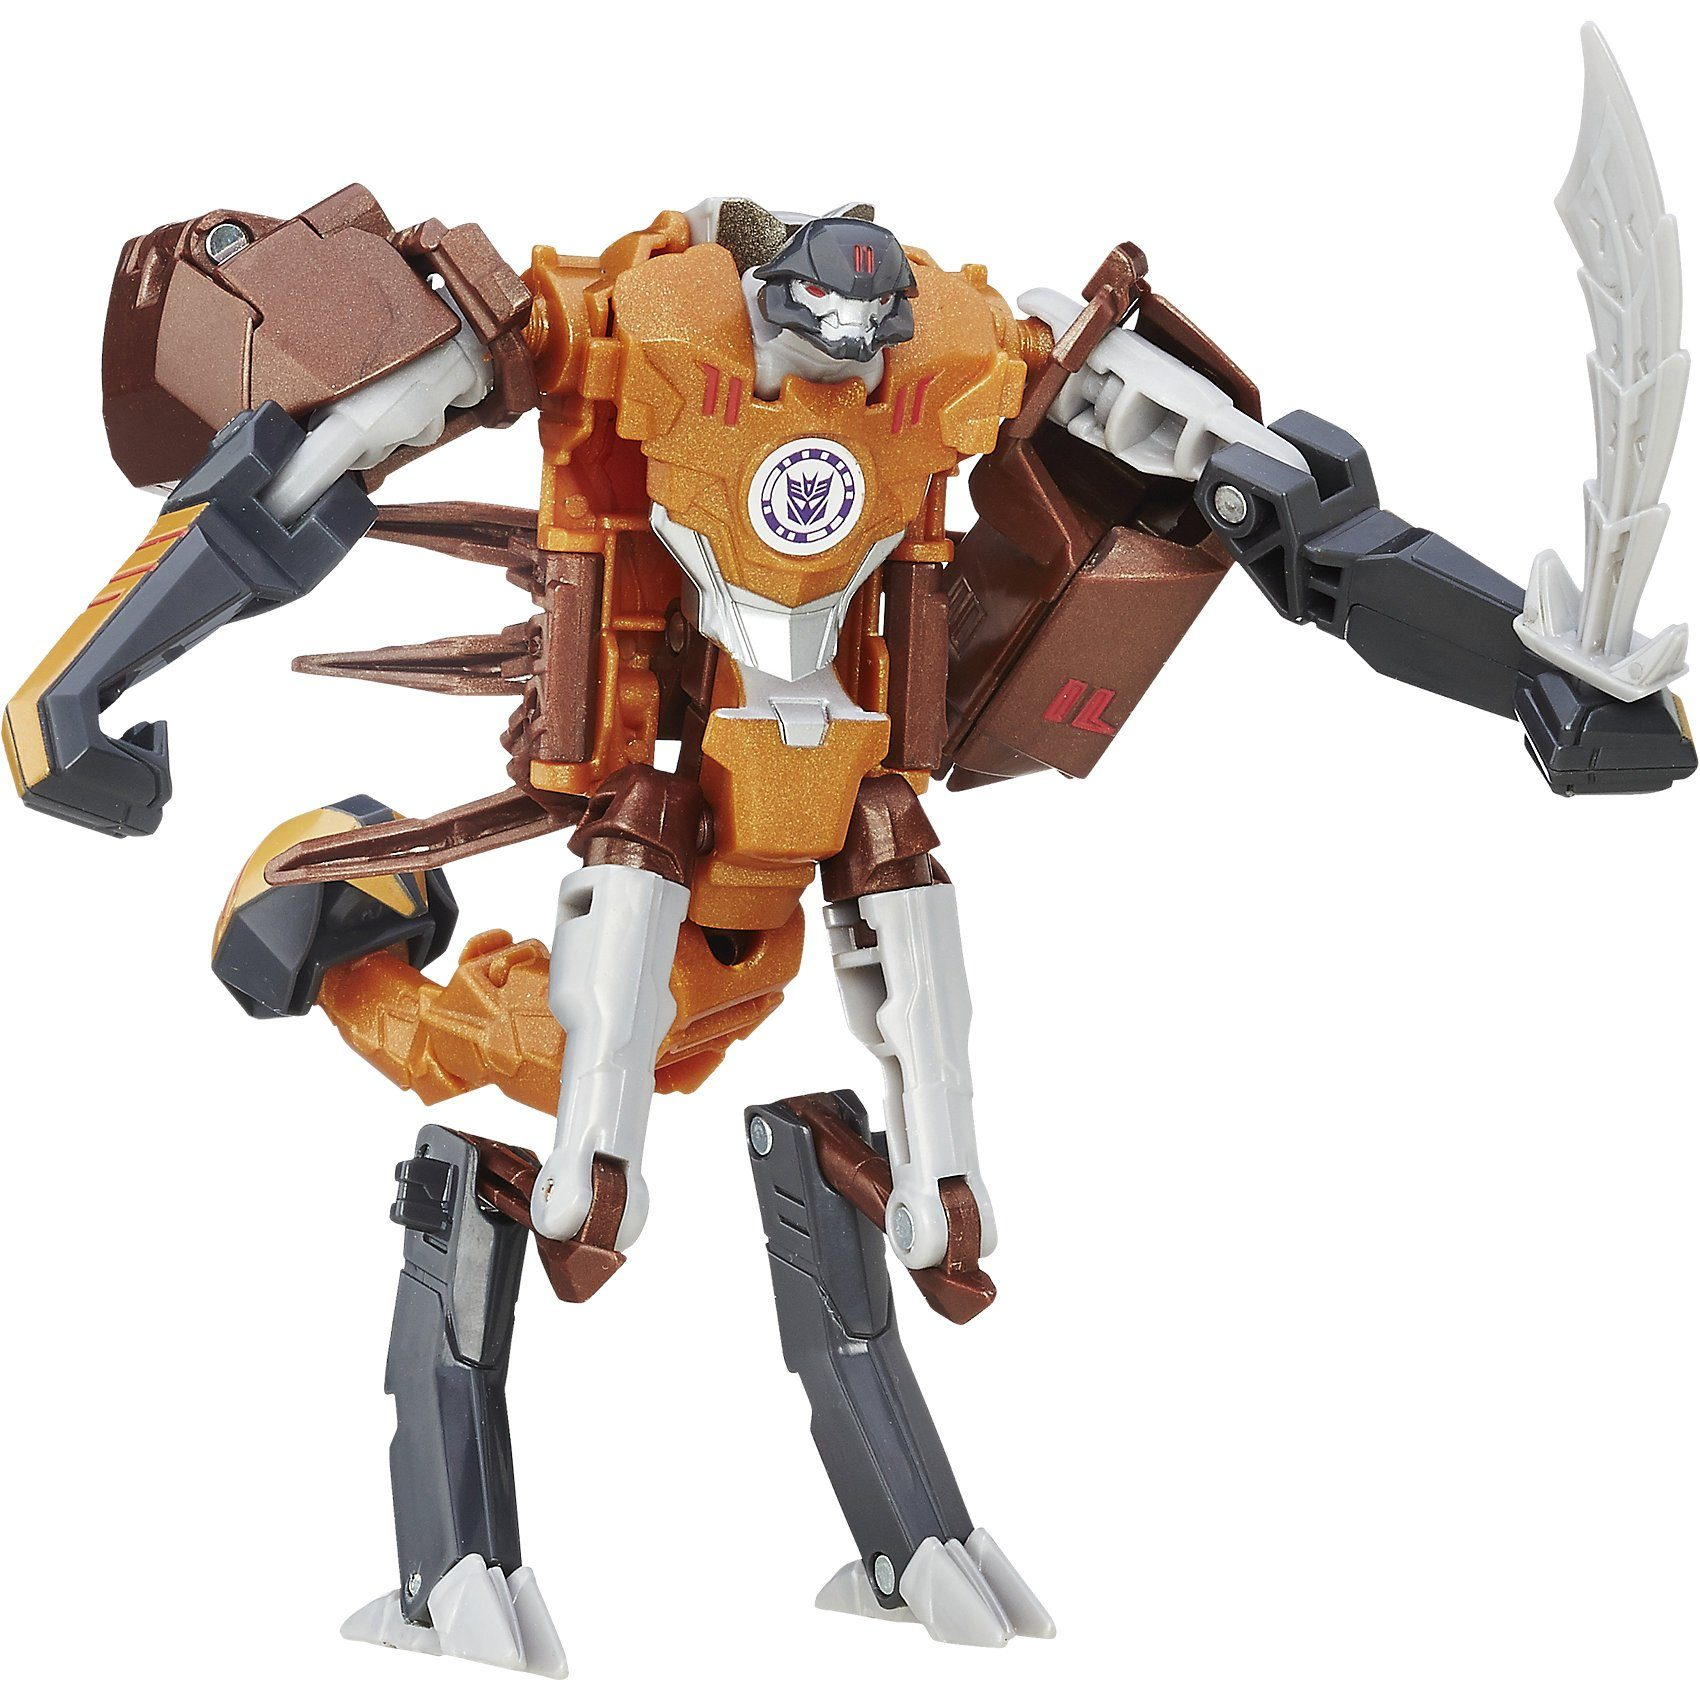 Hasbro Transformers RID Warriors Actionfigur: Scorponok